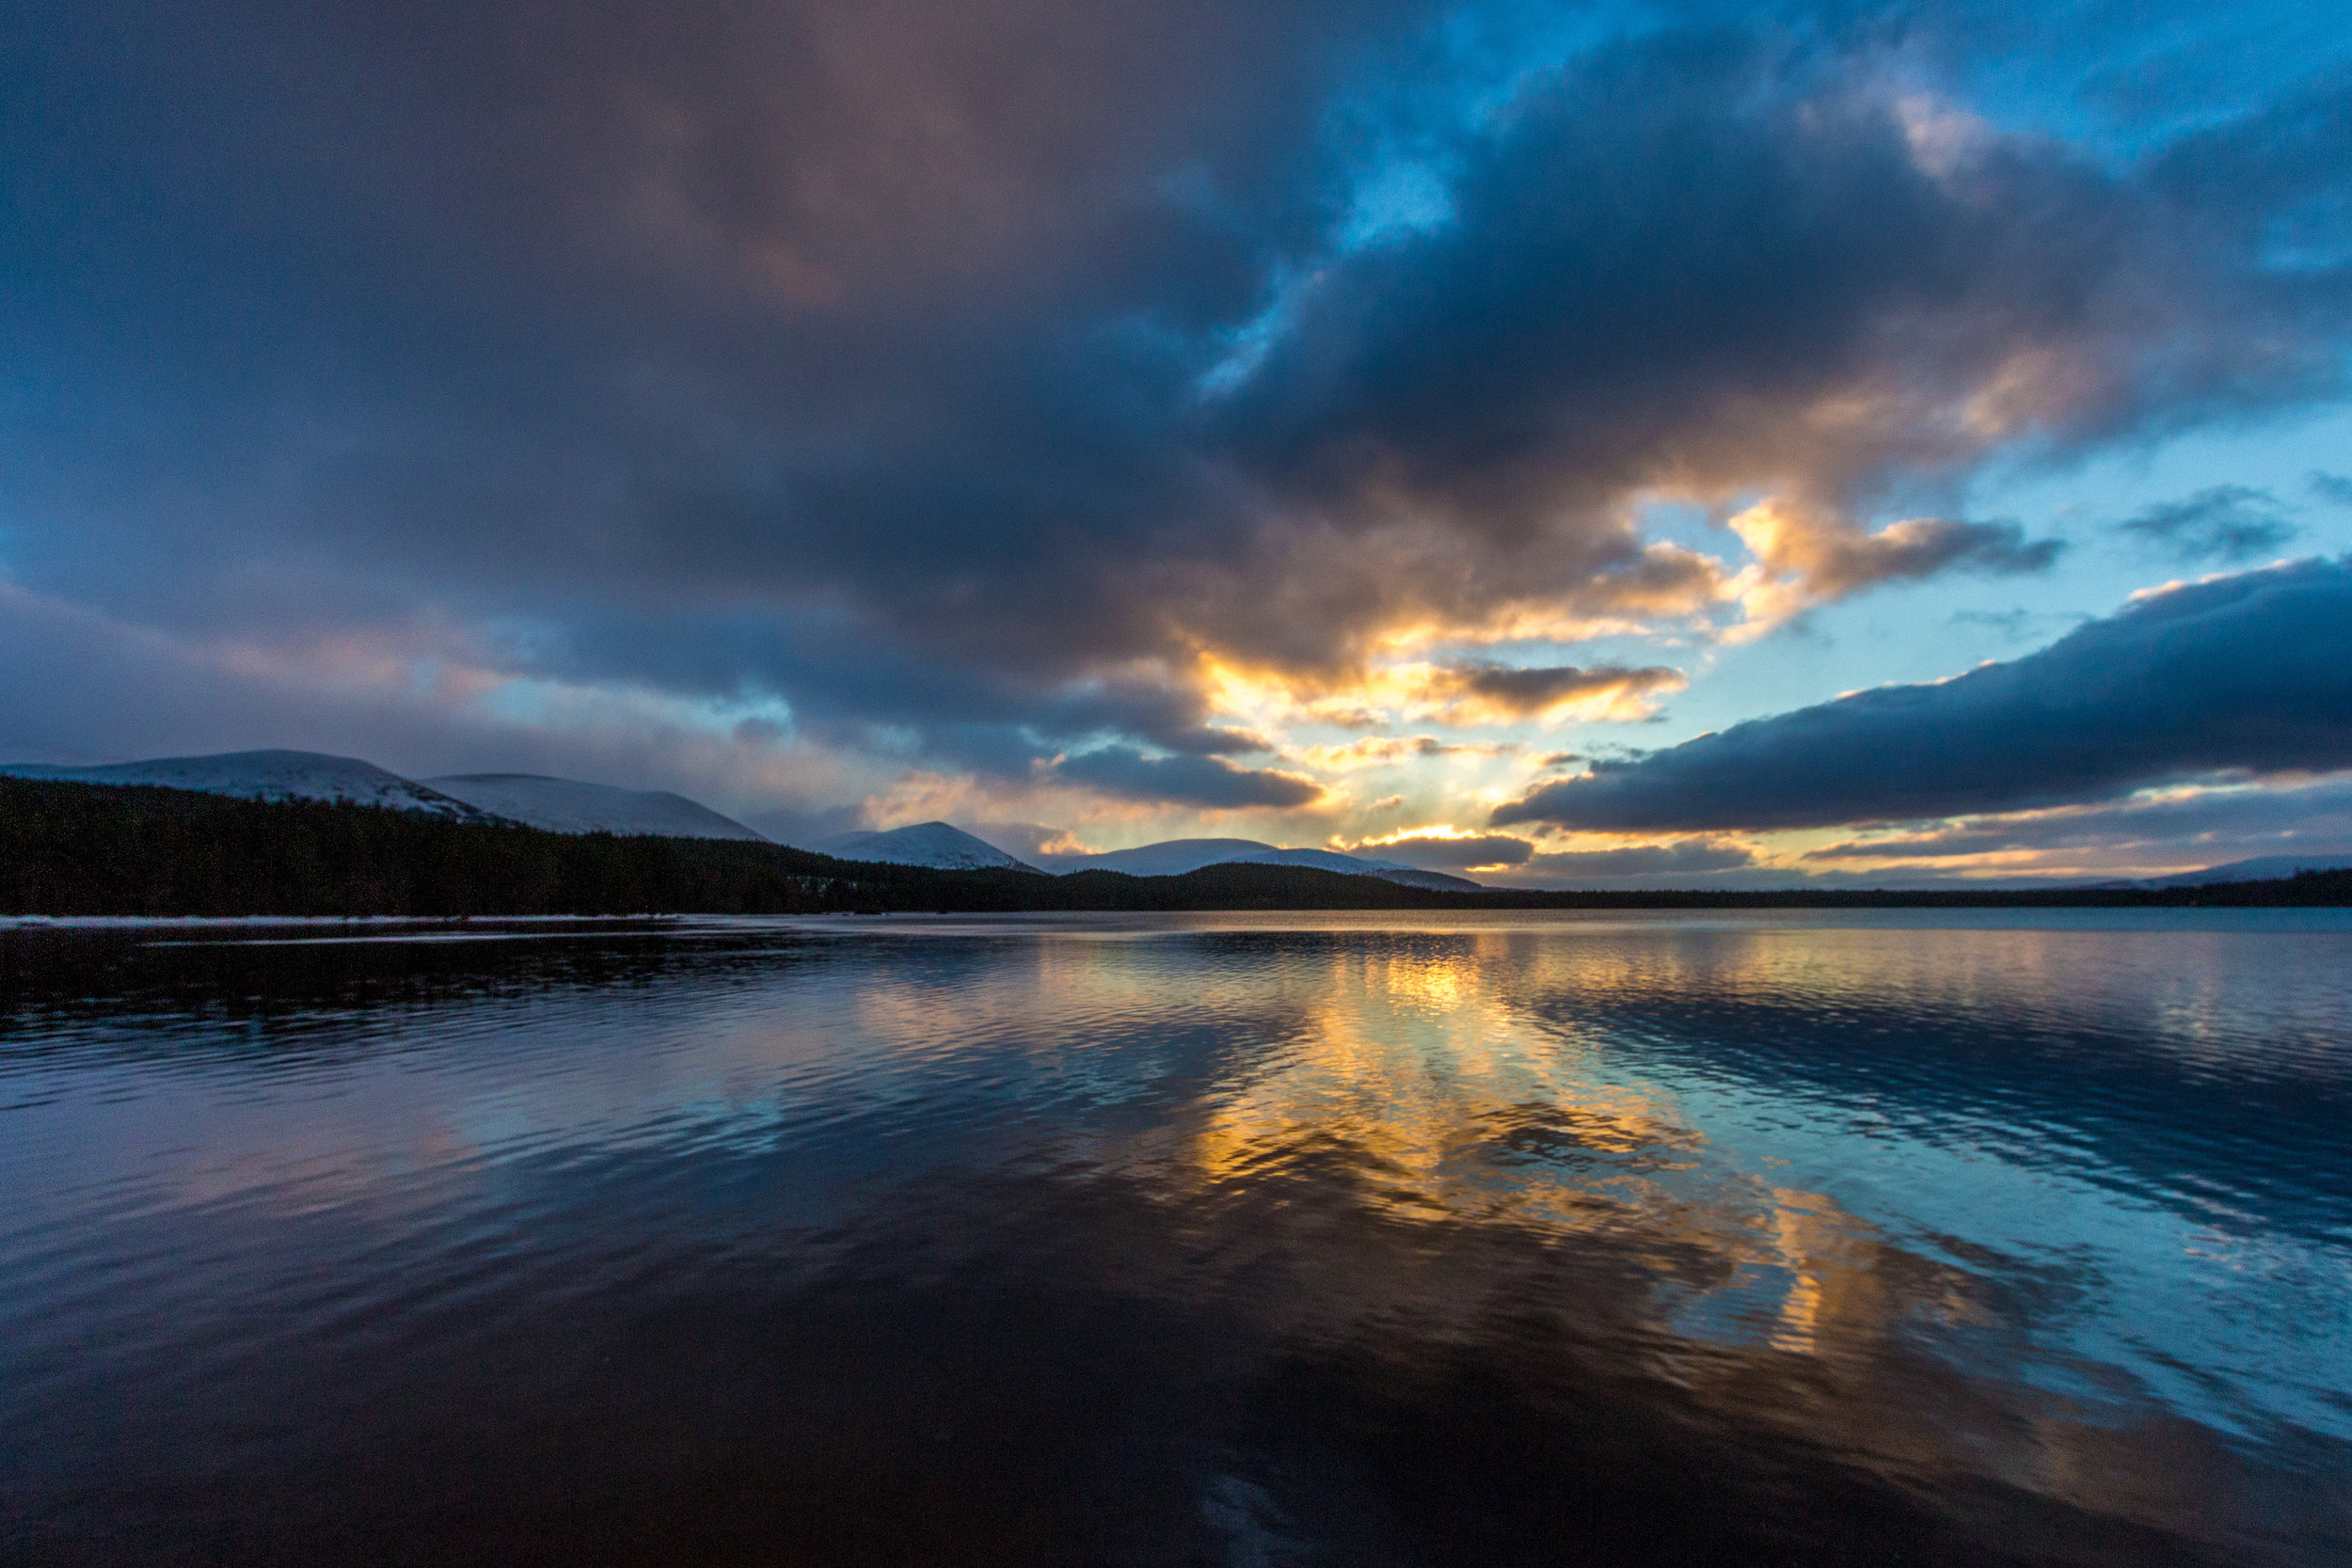 Sunset over Loch Morlich and on our adventure